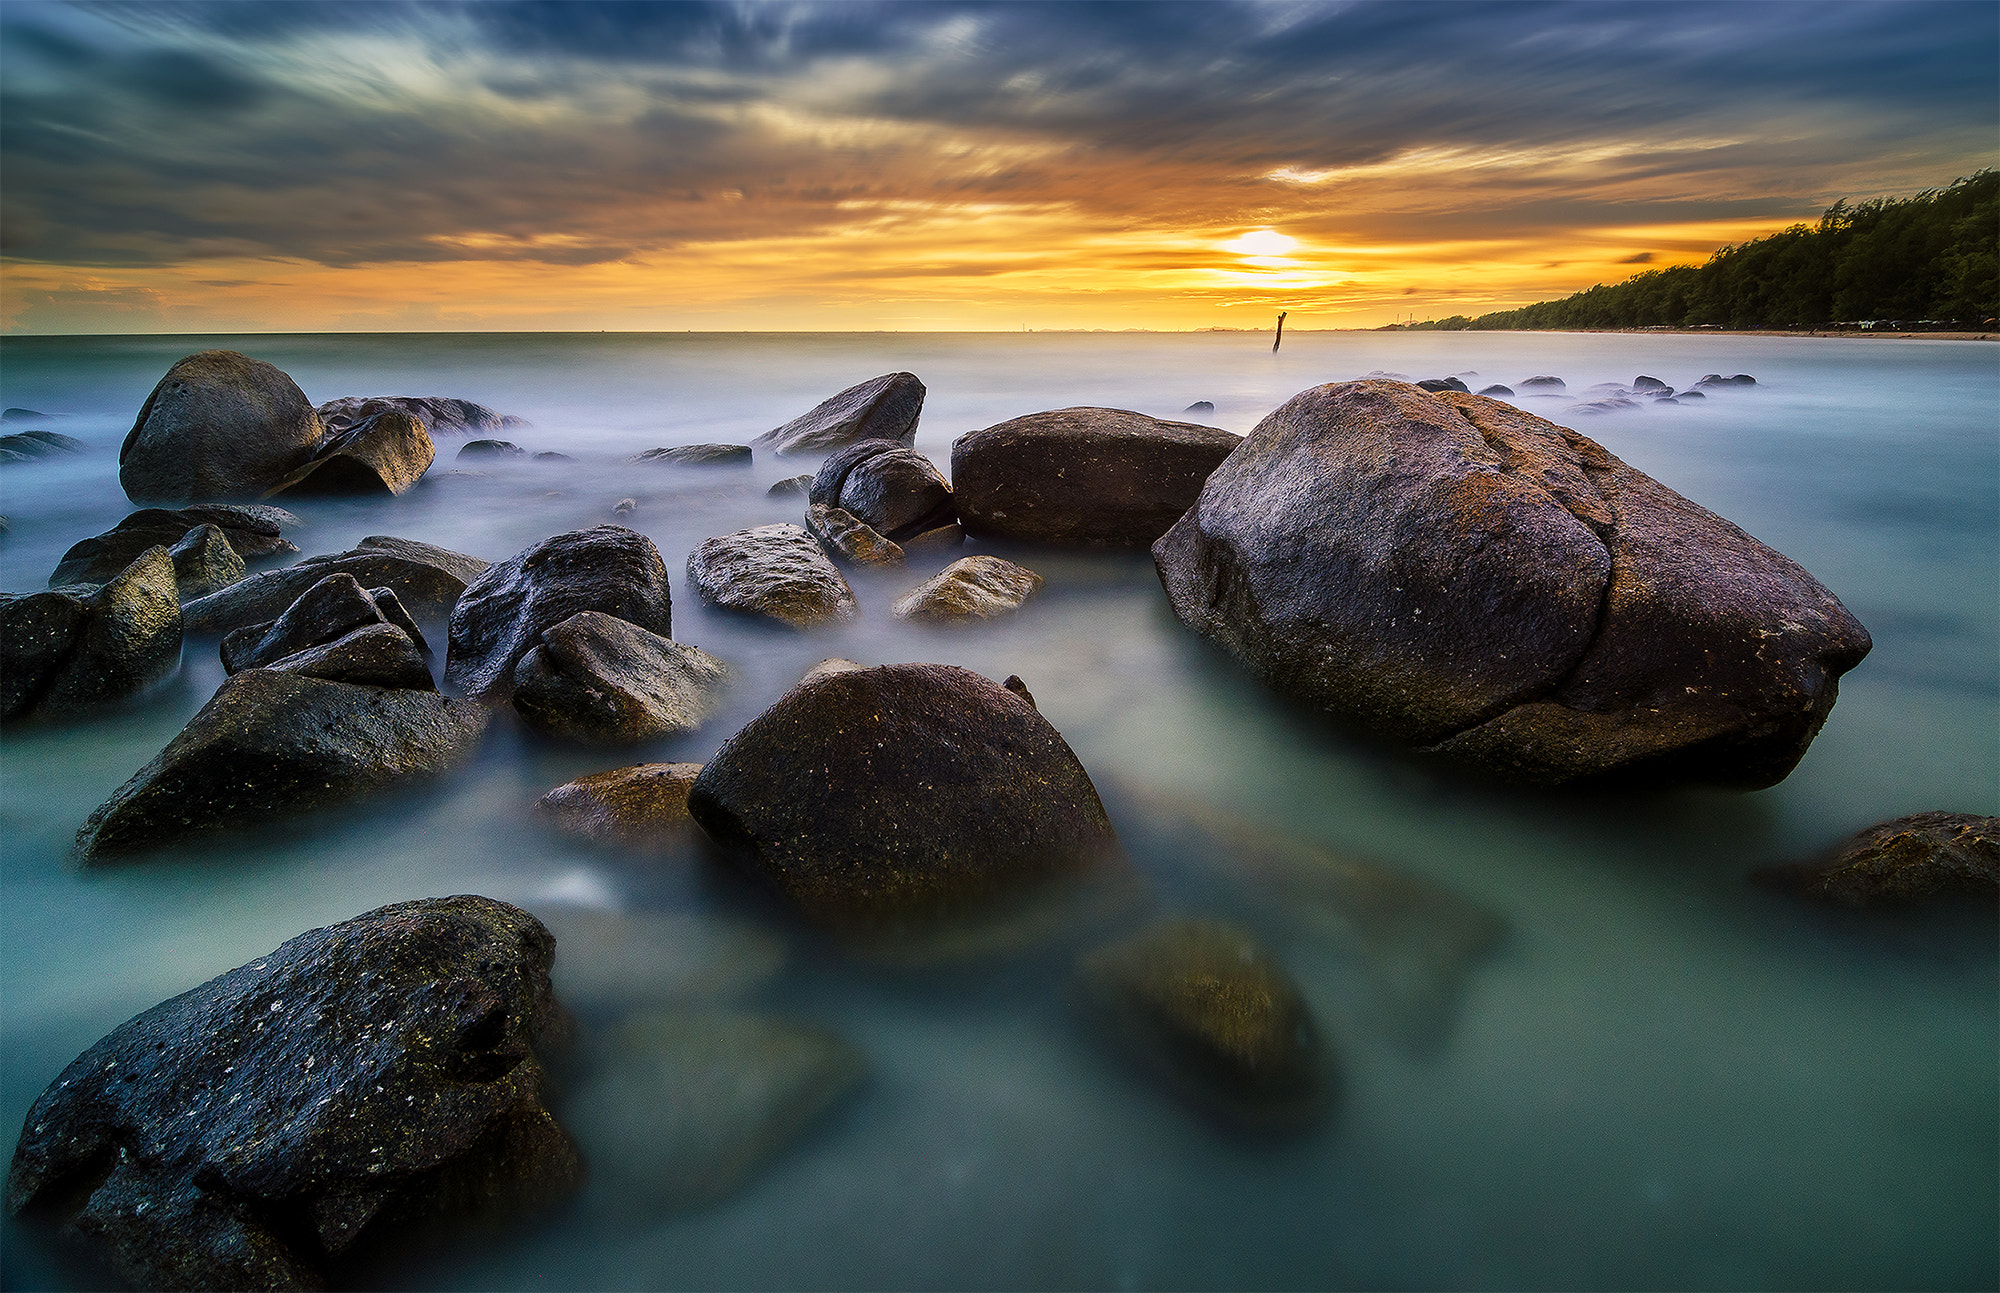 Photograph Rayong Seascape by Taweesak Boonwirut on 500px